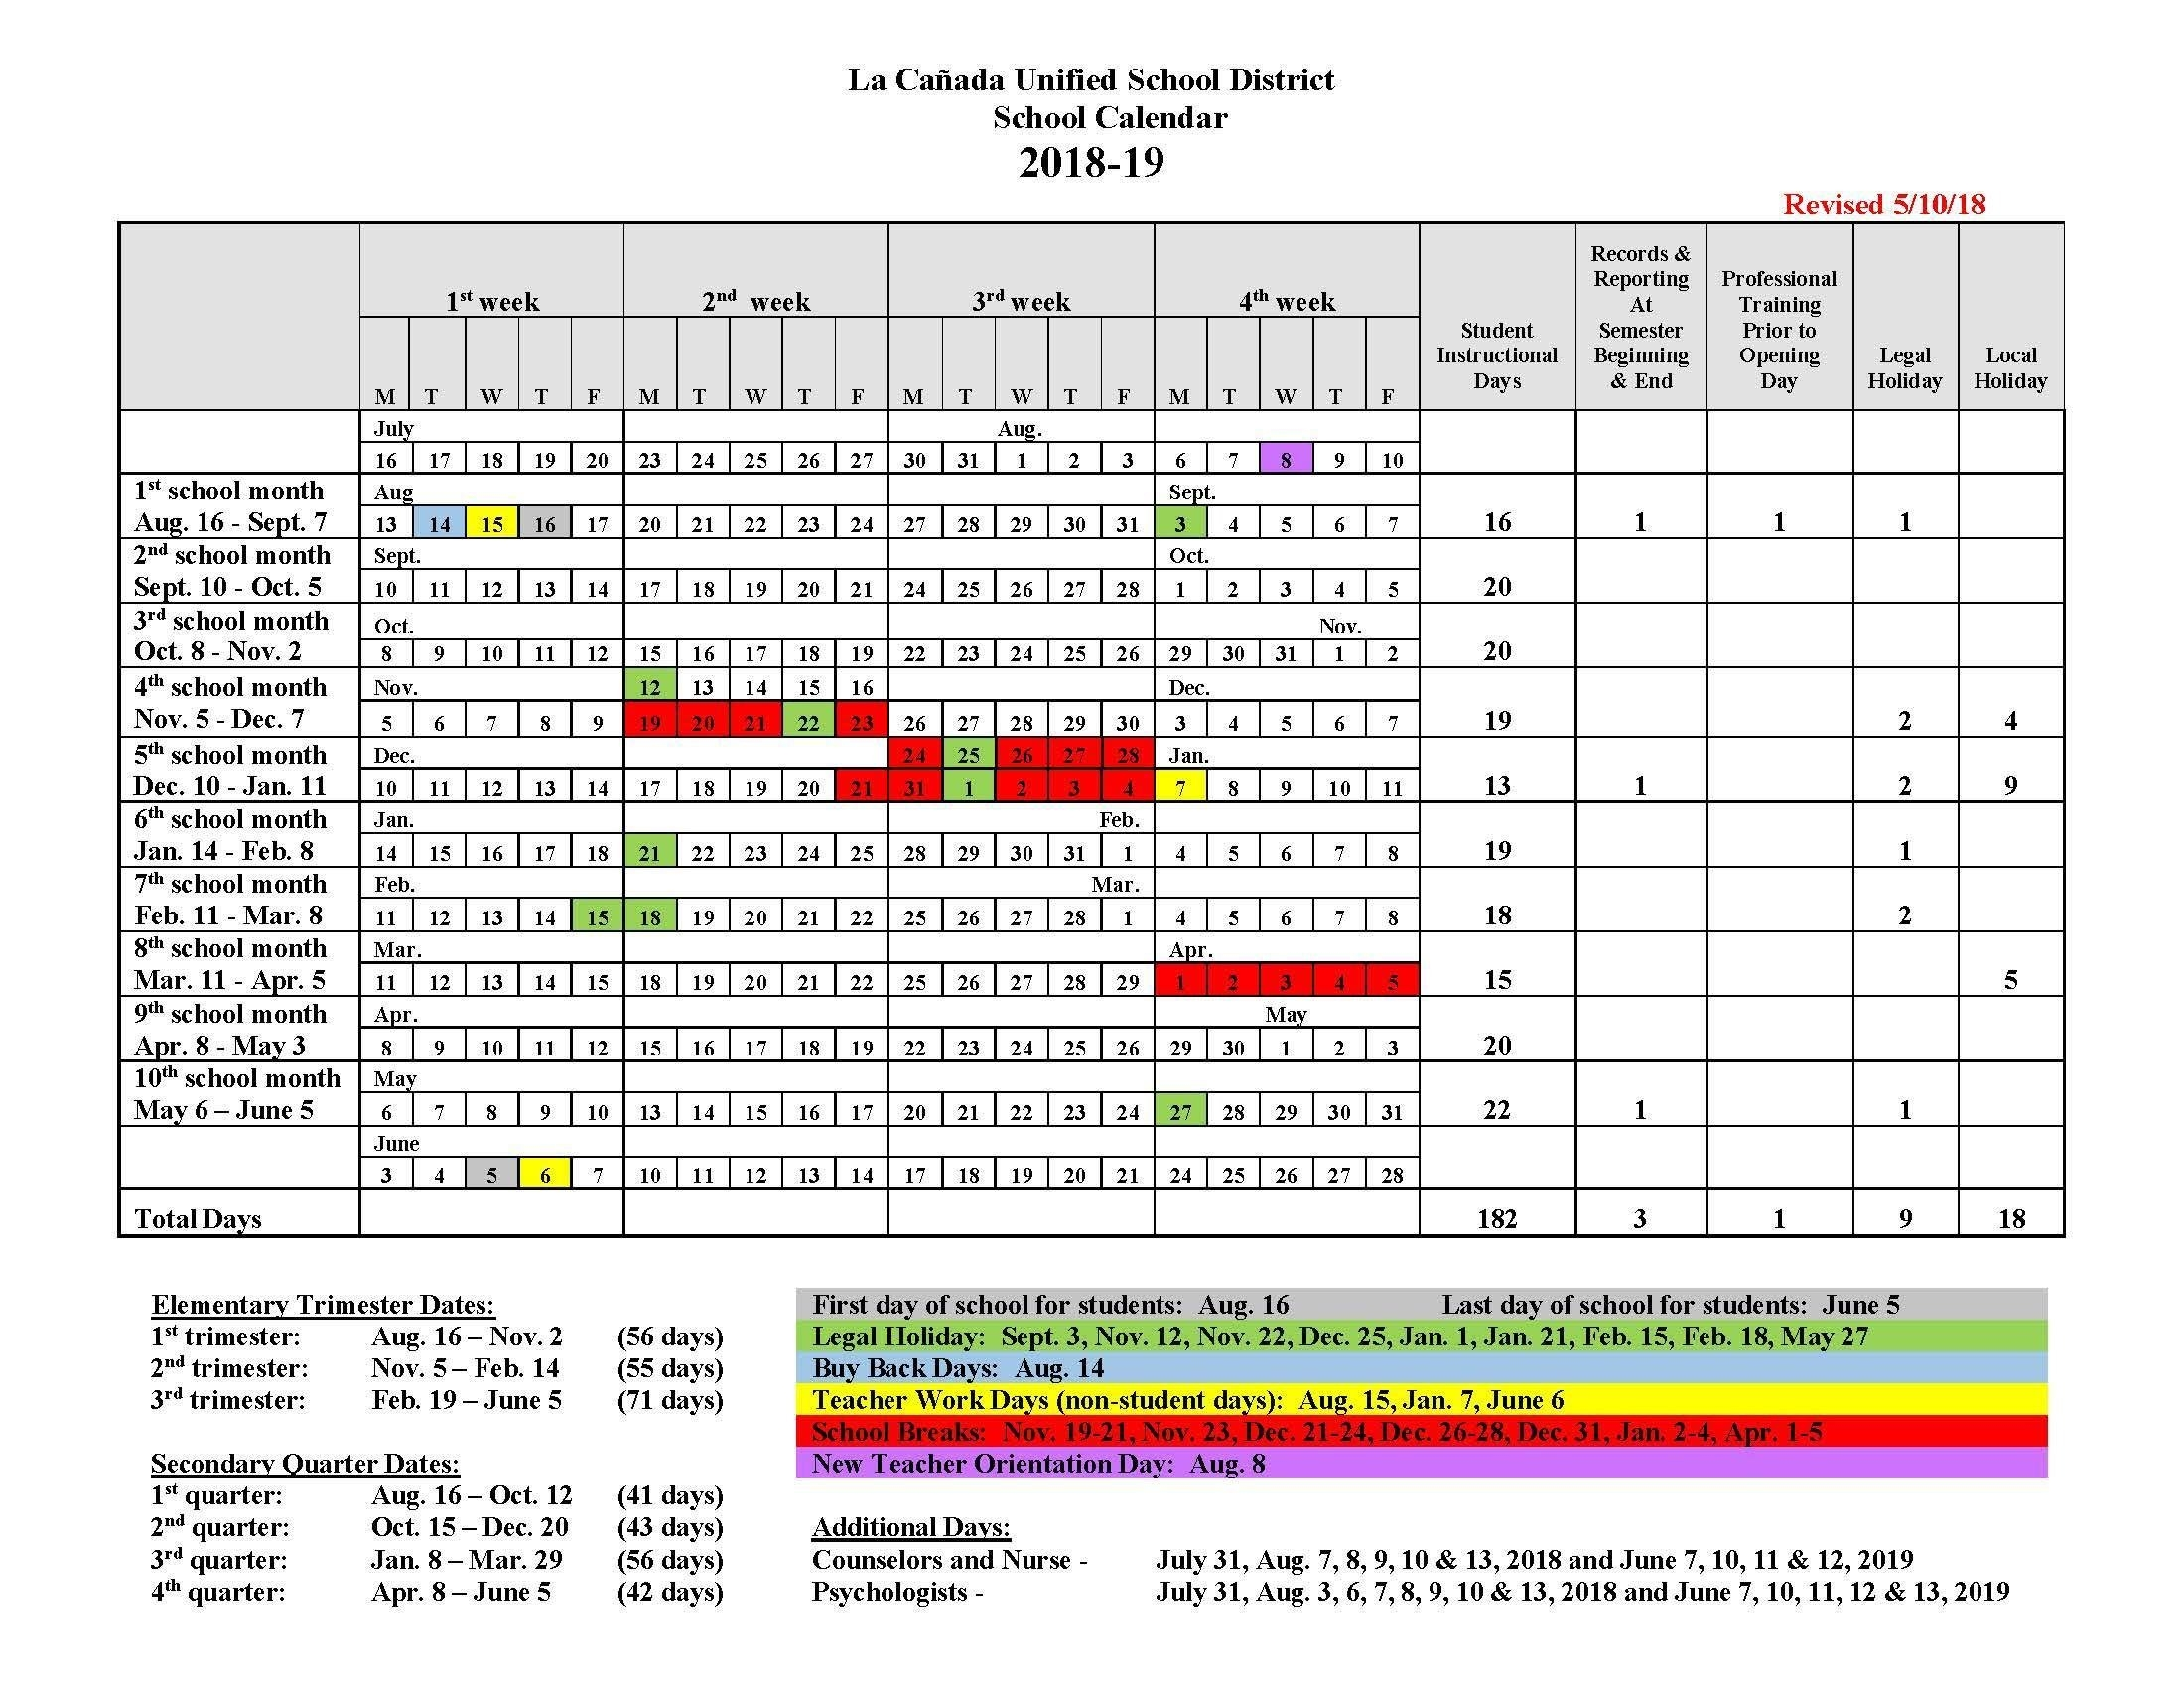 Instructional Days Calendars – Yearly Calendars – La Cañada Unified School District 8 2019 Calendar